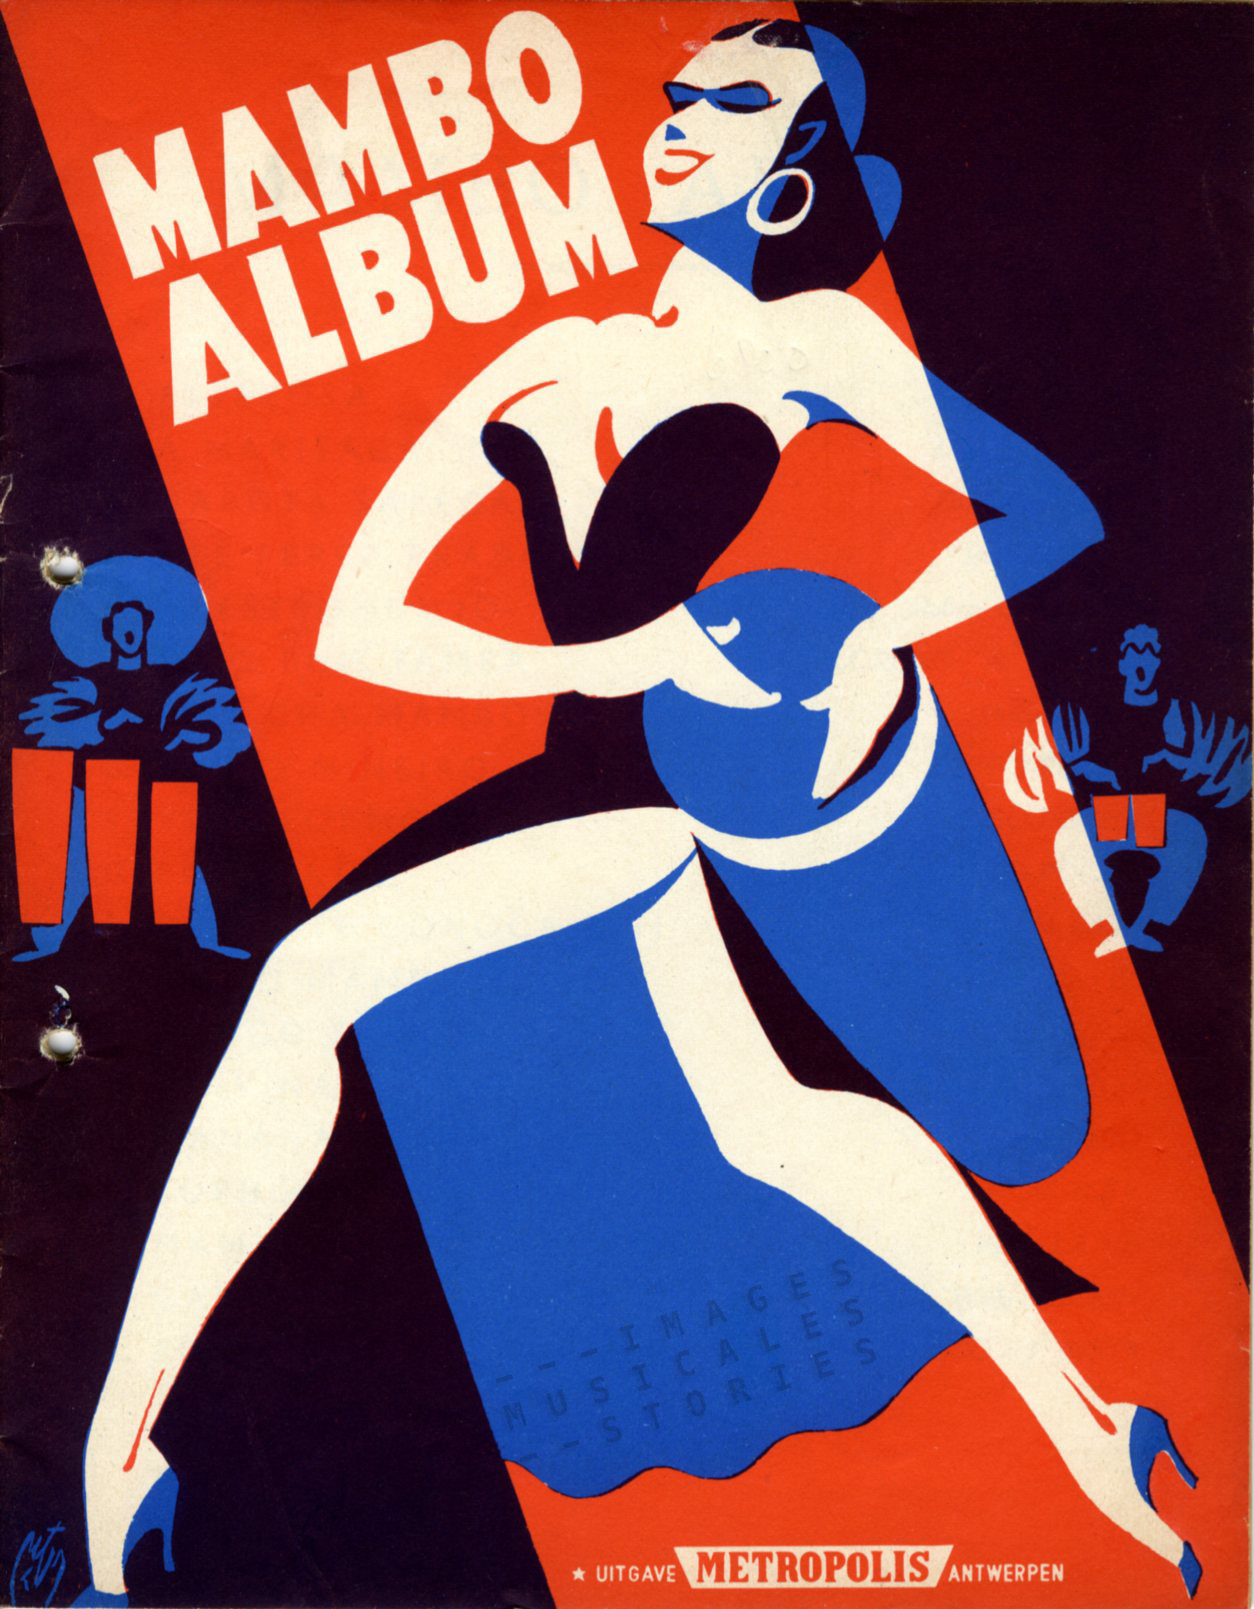 Sheet music cover by Peter Dde Greef (partion de musique illustrée)